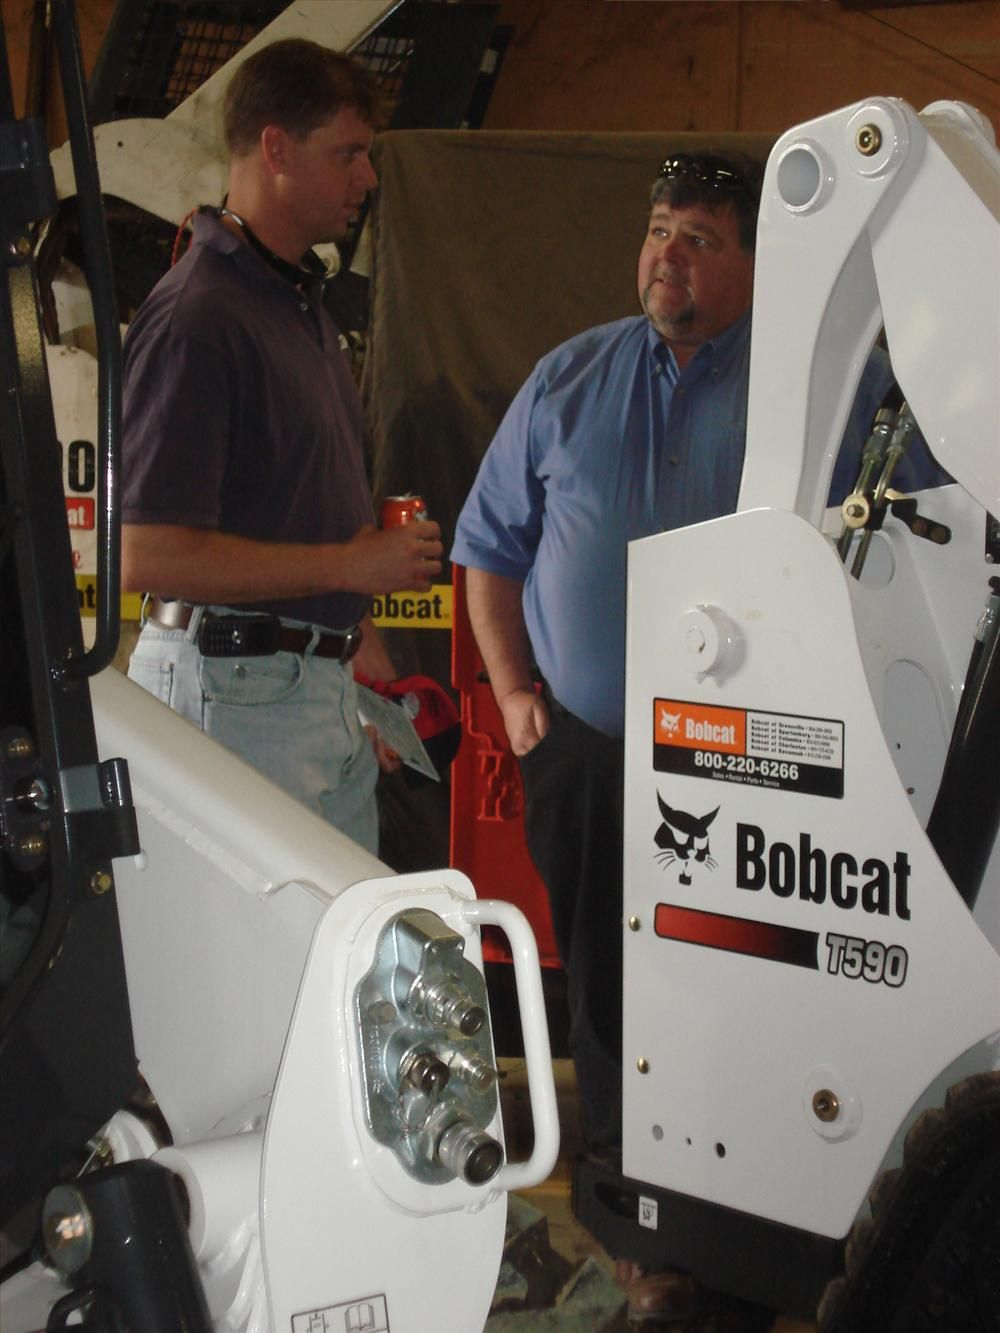 Barry Hedbloom (L) of Hedbloom Builders in Spartanburg looks at different pieces of Bobcat equipment as Steve Payne of Bobcat in Spartanburg explains the recent enhancements of each machine.